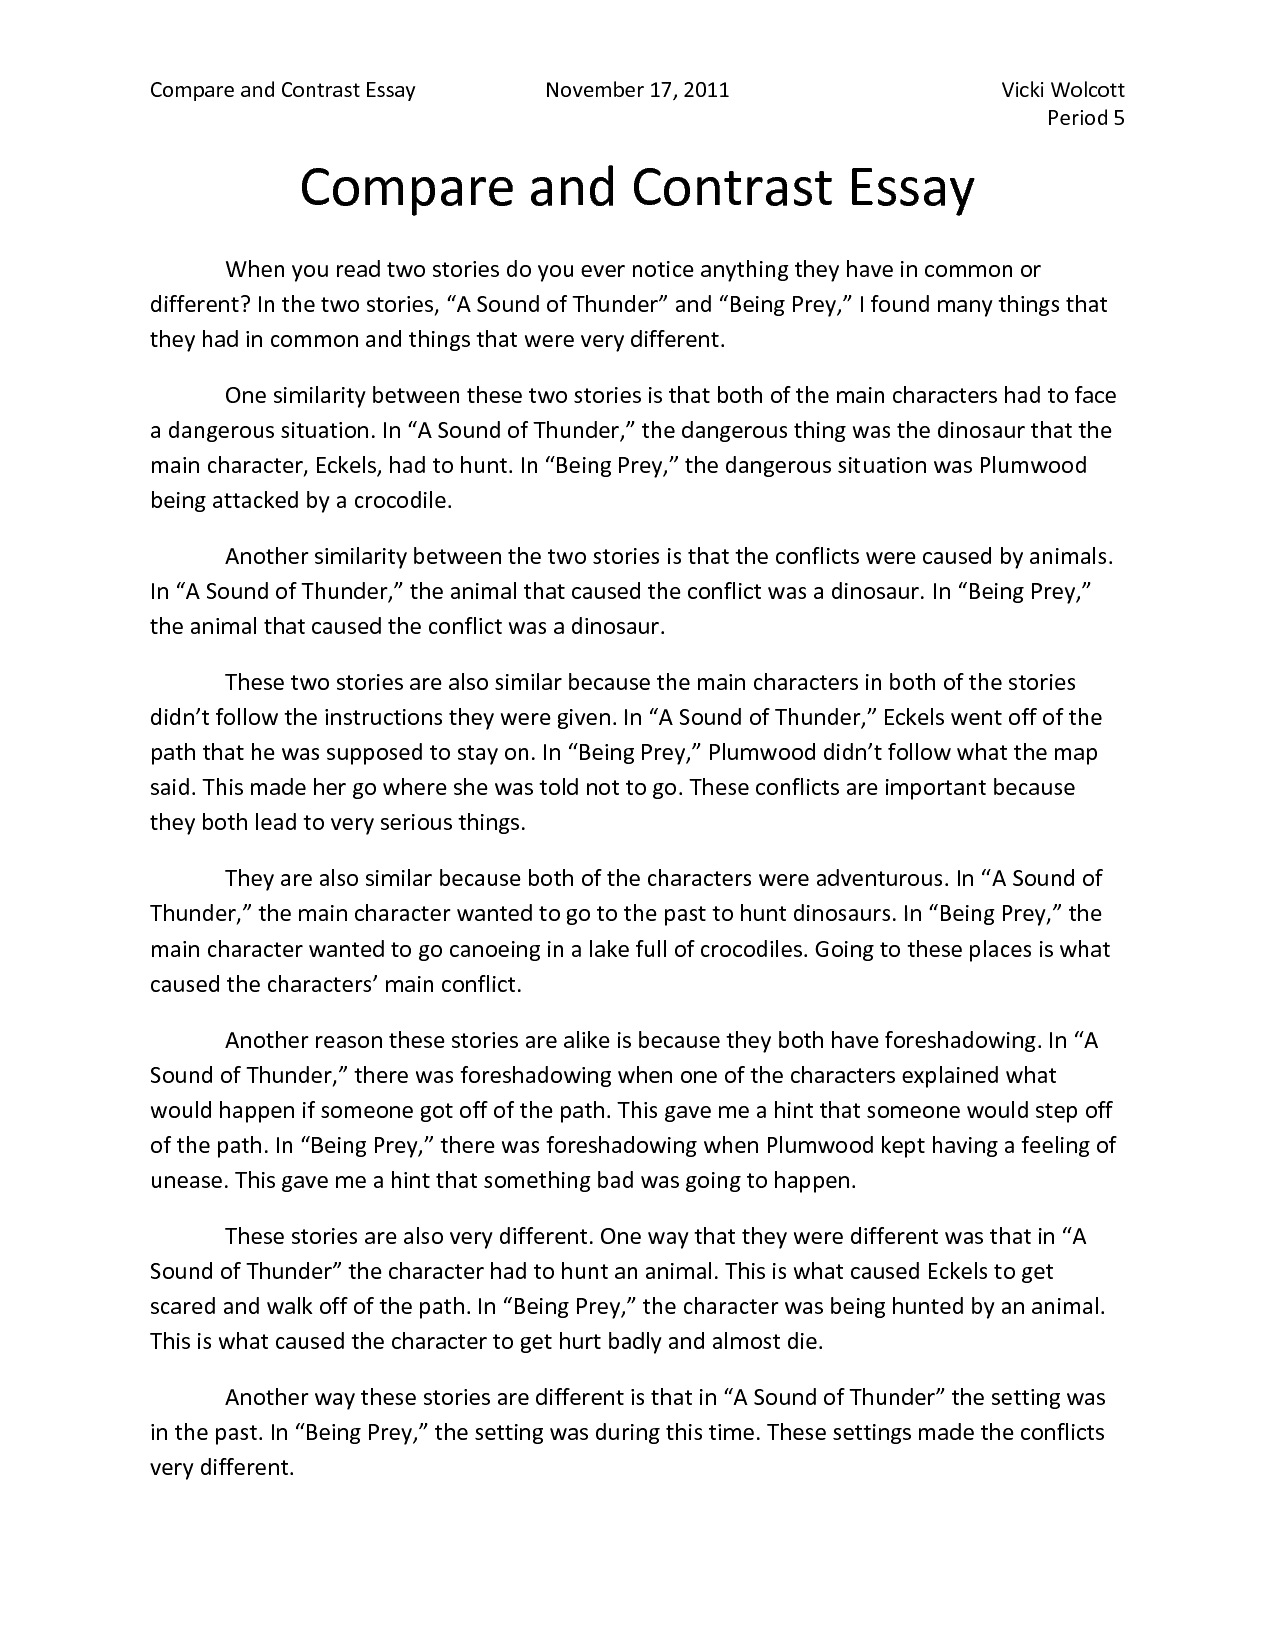 the comparison essay Compare and contrast essay detailed writing guide with structure patterns, introduction and conclusion techniques, useful examples, tips and best practices.